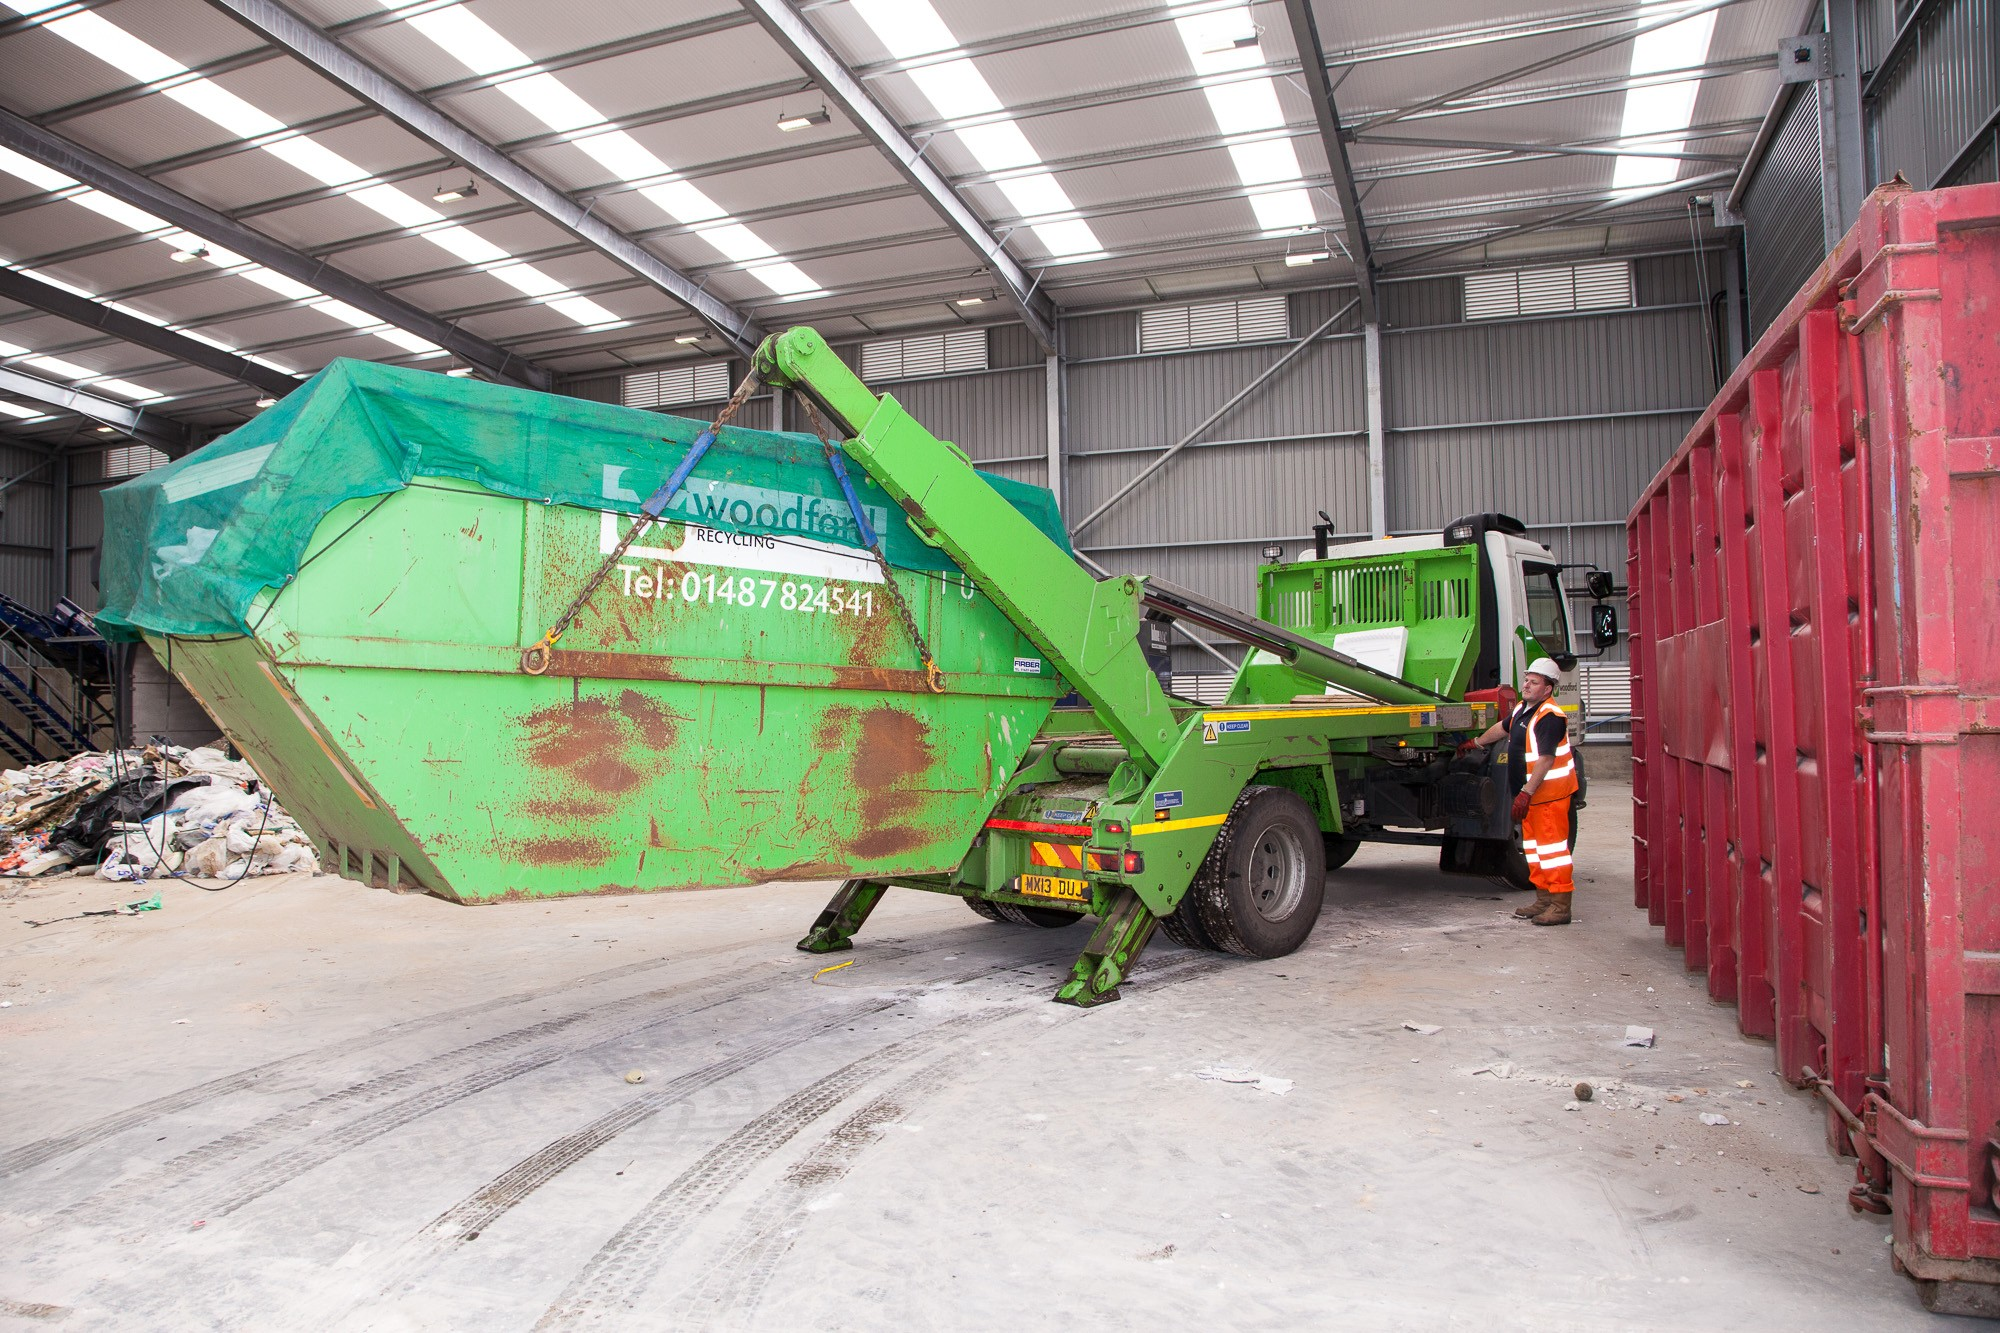 woodford-recycling-skip-hire-unloading-2